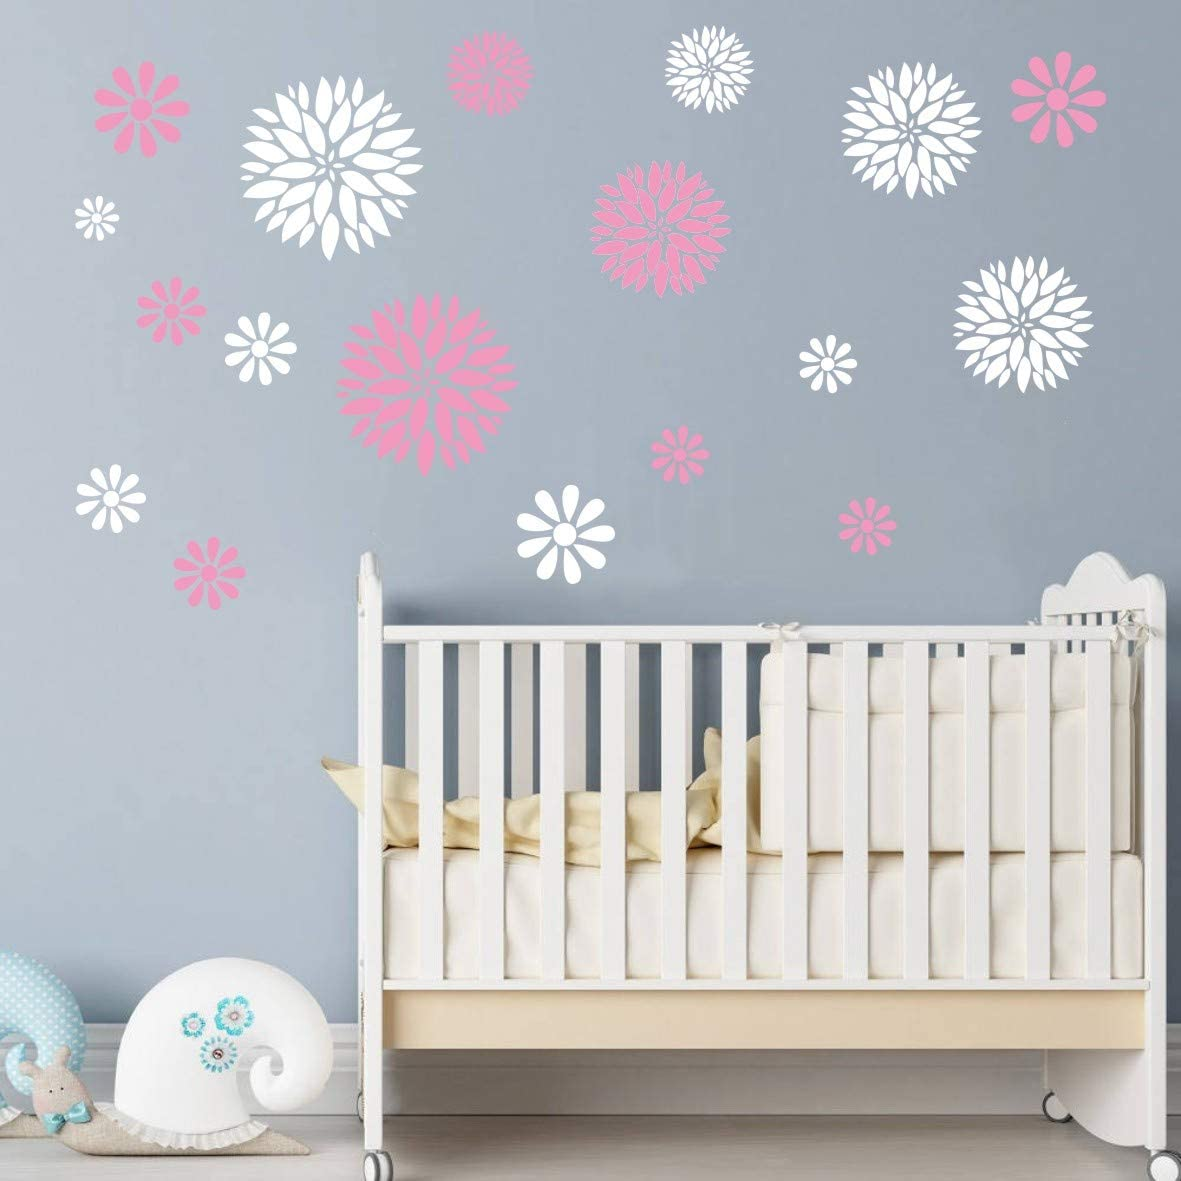 Art Home Decor Nursery Room Sticker Beauty Flowers Decoration Stickers for Girls Bedroom Removable Wall Sticker (White+Pink)